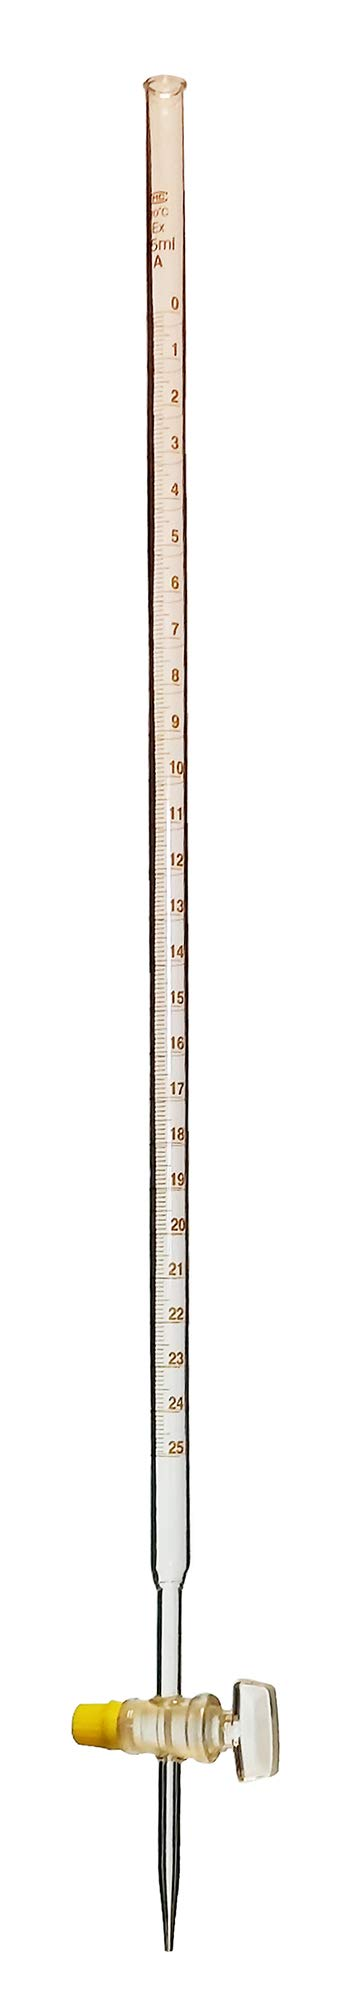 Burette with Ground Glass Stopcock, 25ml, Pack of 5 by GSC